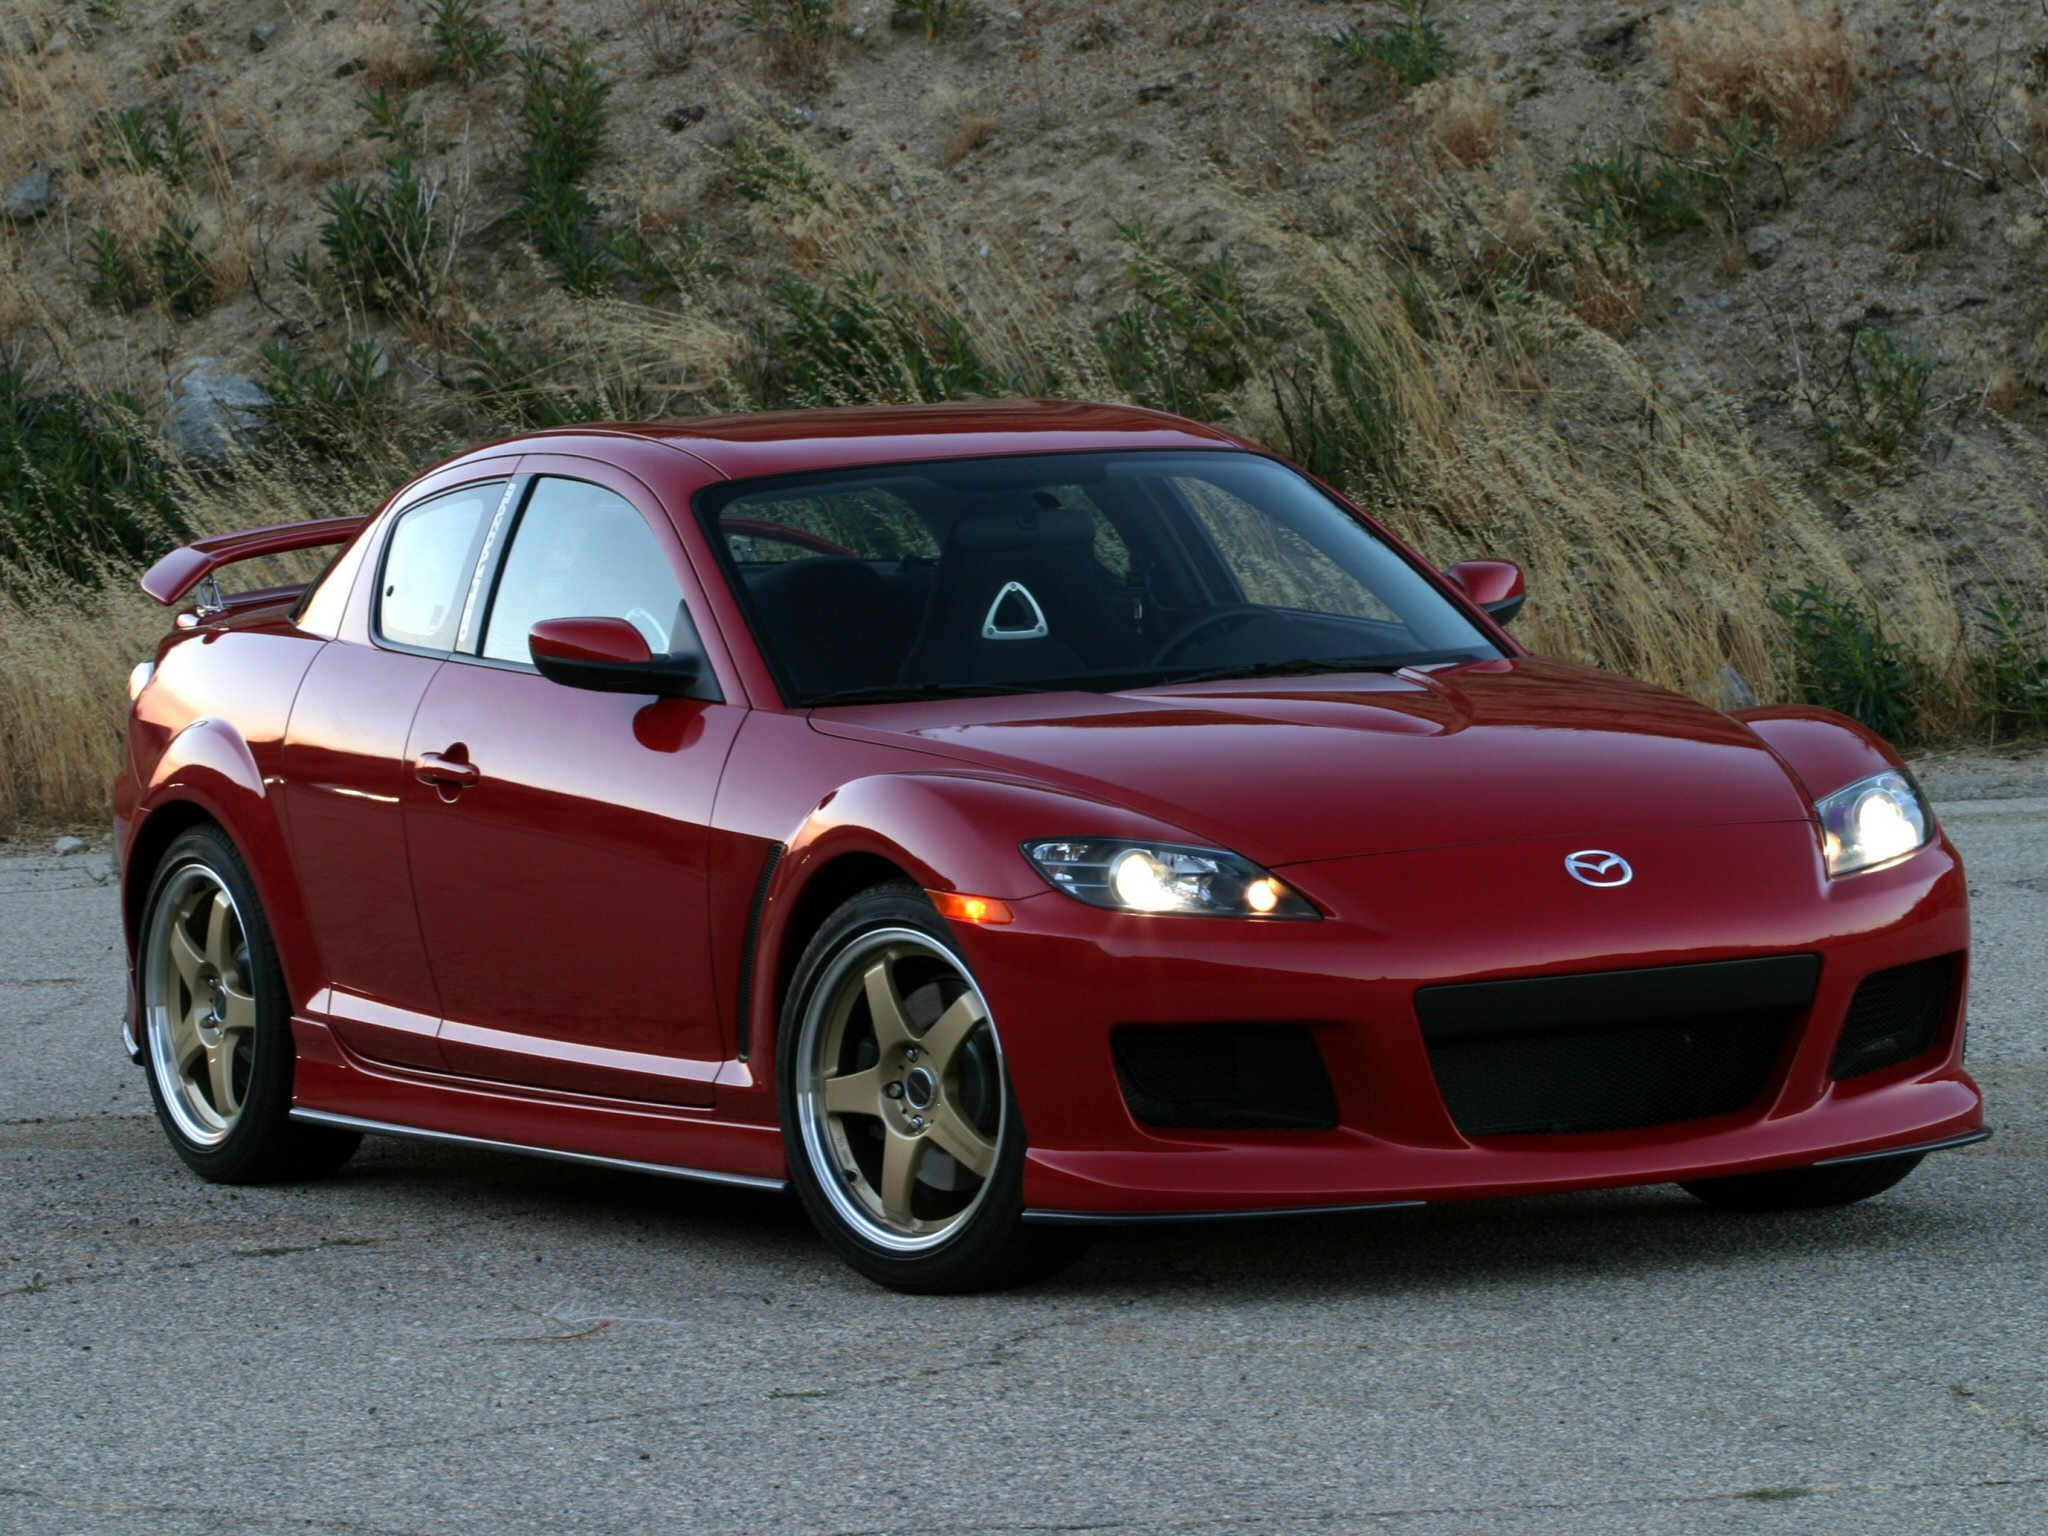 2006 Mazda RX8 Speed Equipped